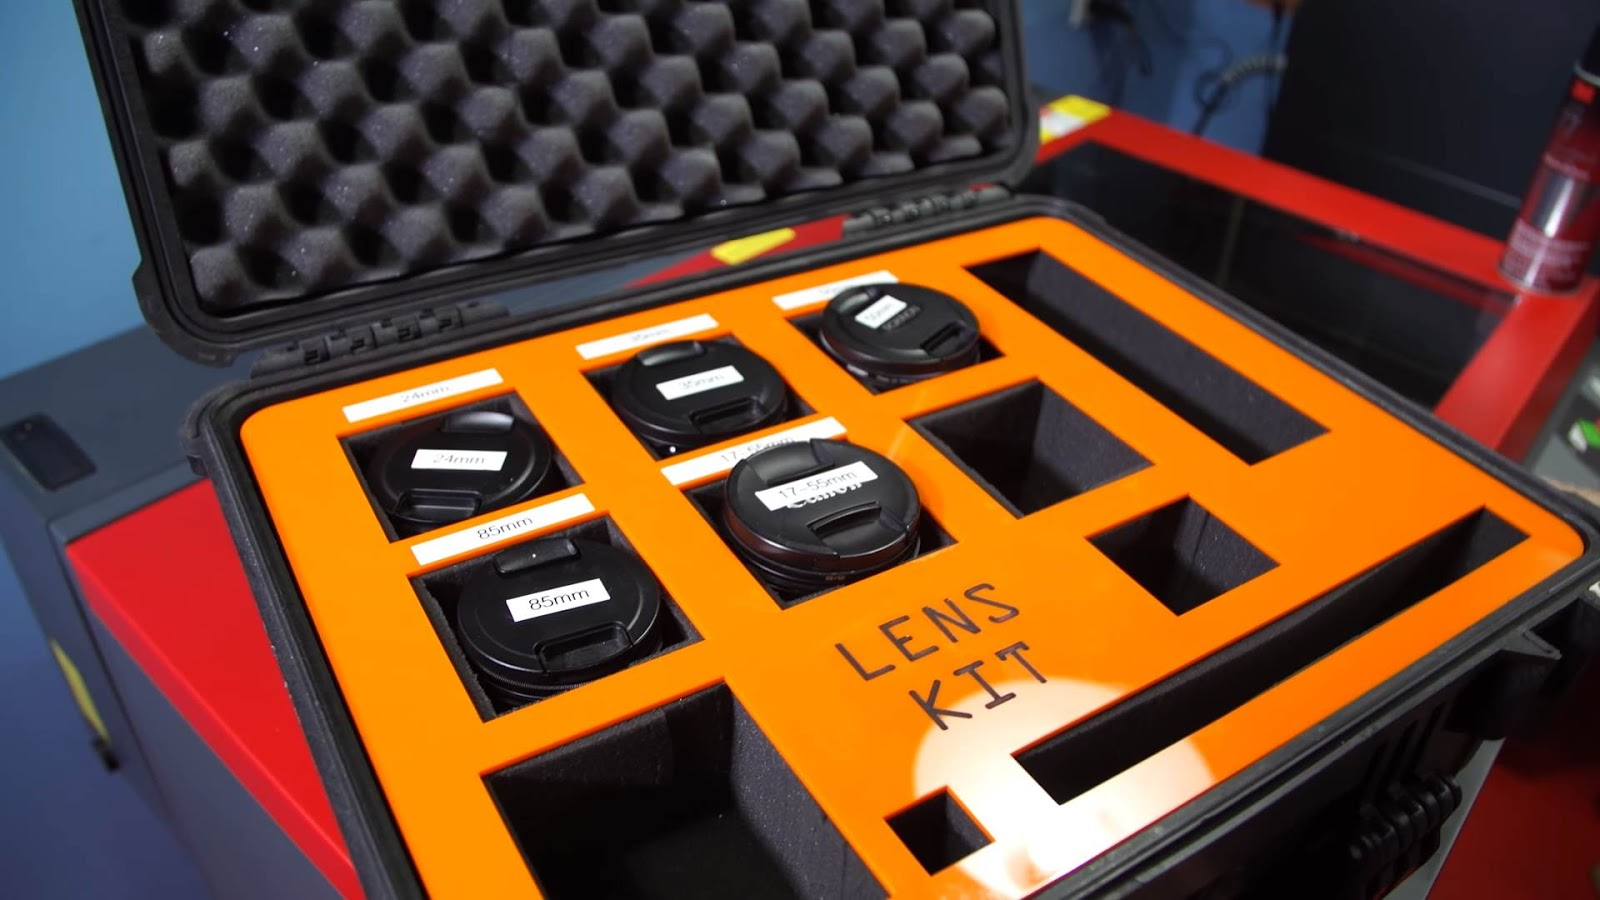 Customizing a Pelican Case with Our Laser Cutter! - Blog